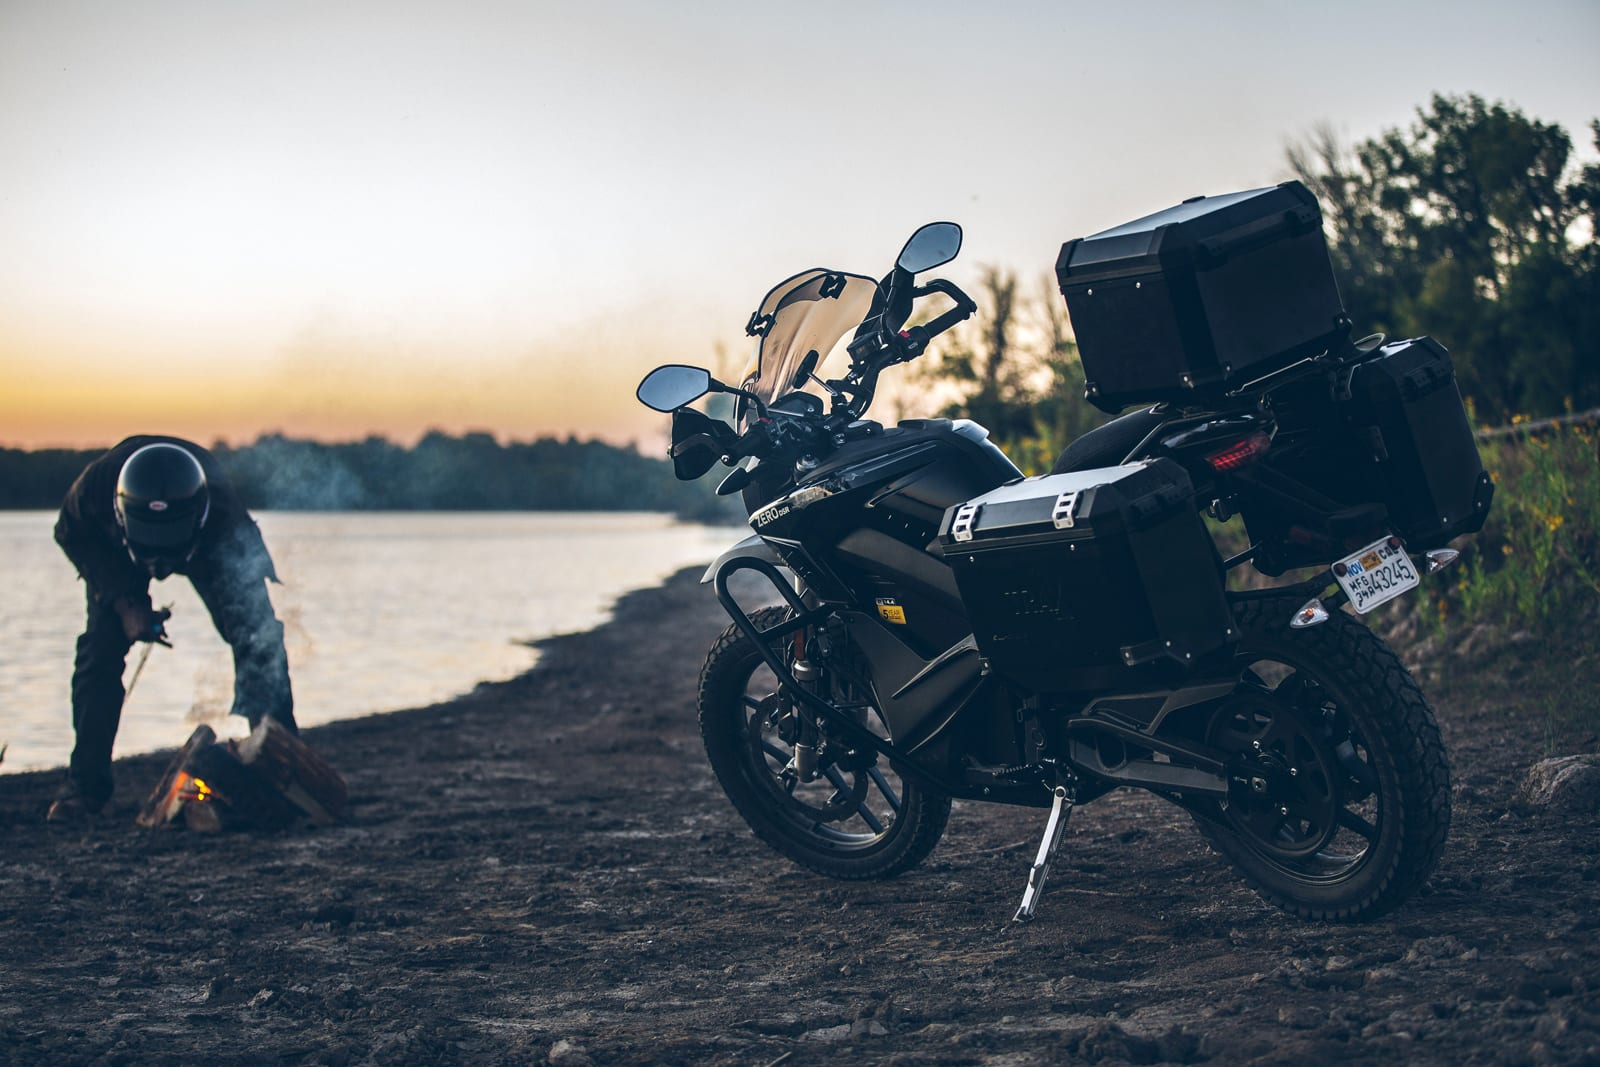 Zero's 2020 electric motorcycles include one that's loaded for adventures